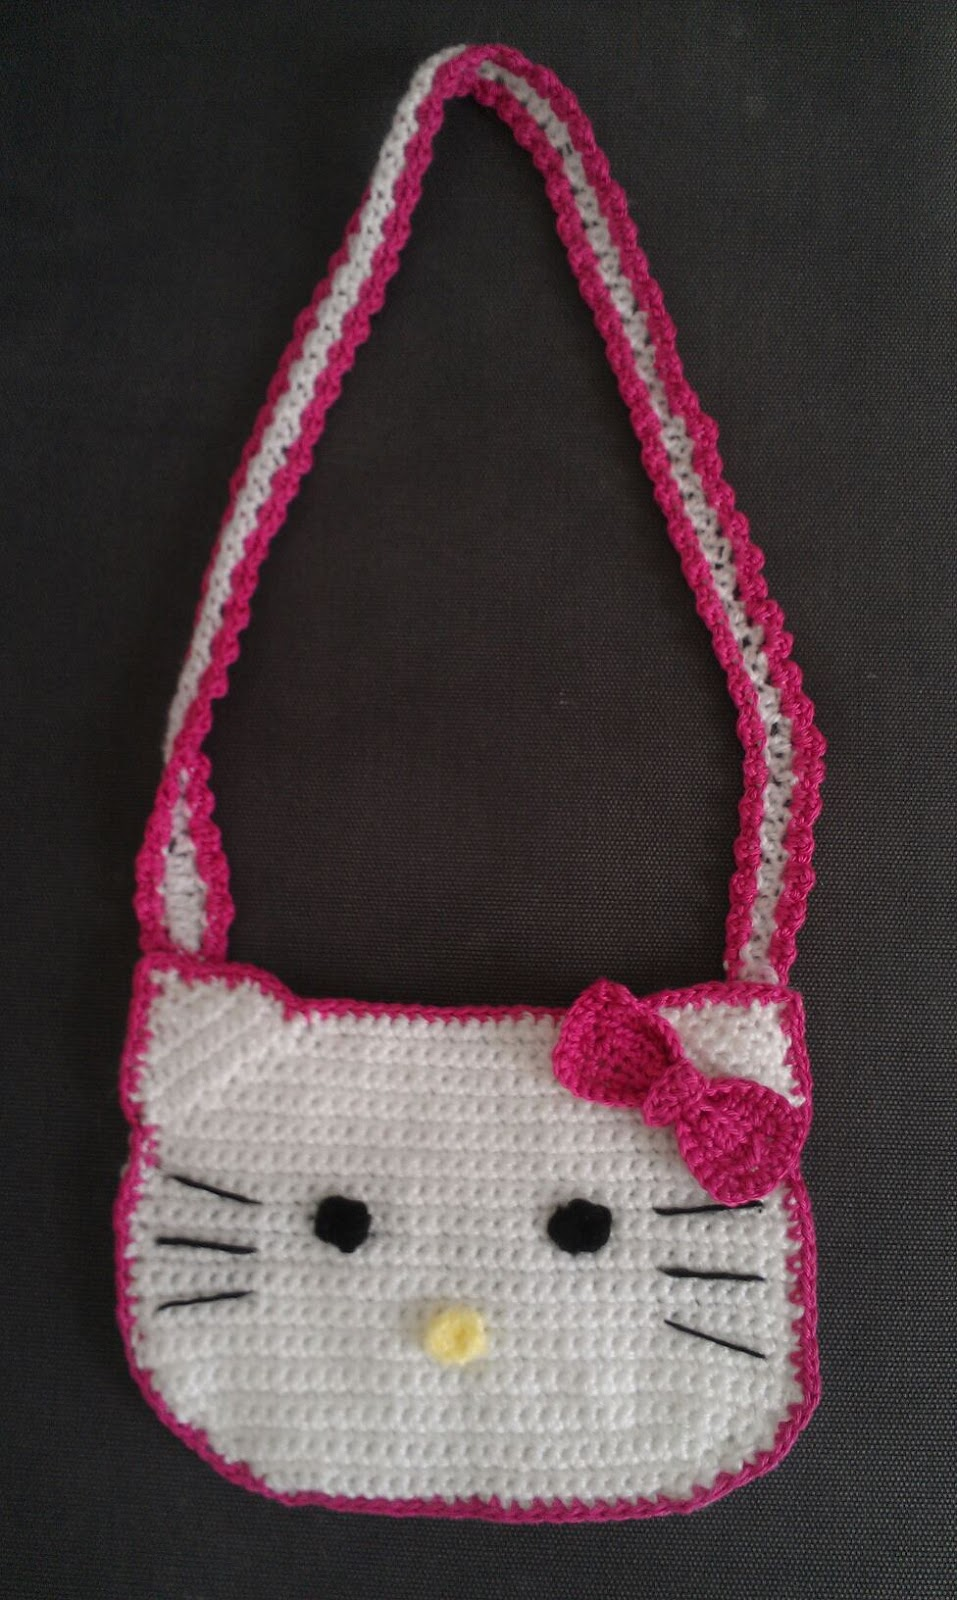 Crochet Purse Patterns Hello Kitty : Crochet inspired: hello kitty crochet bag - free pattern